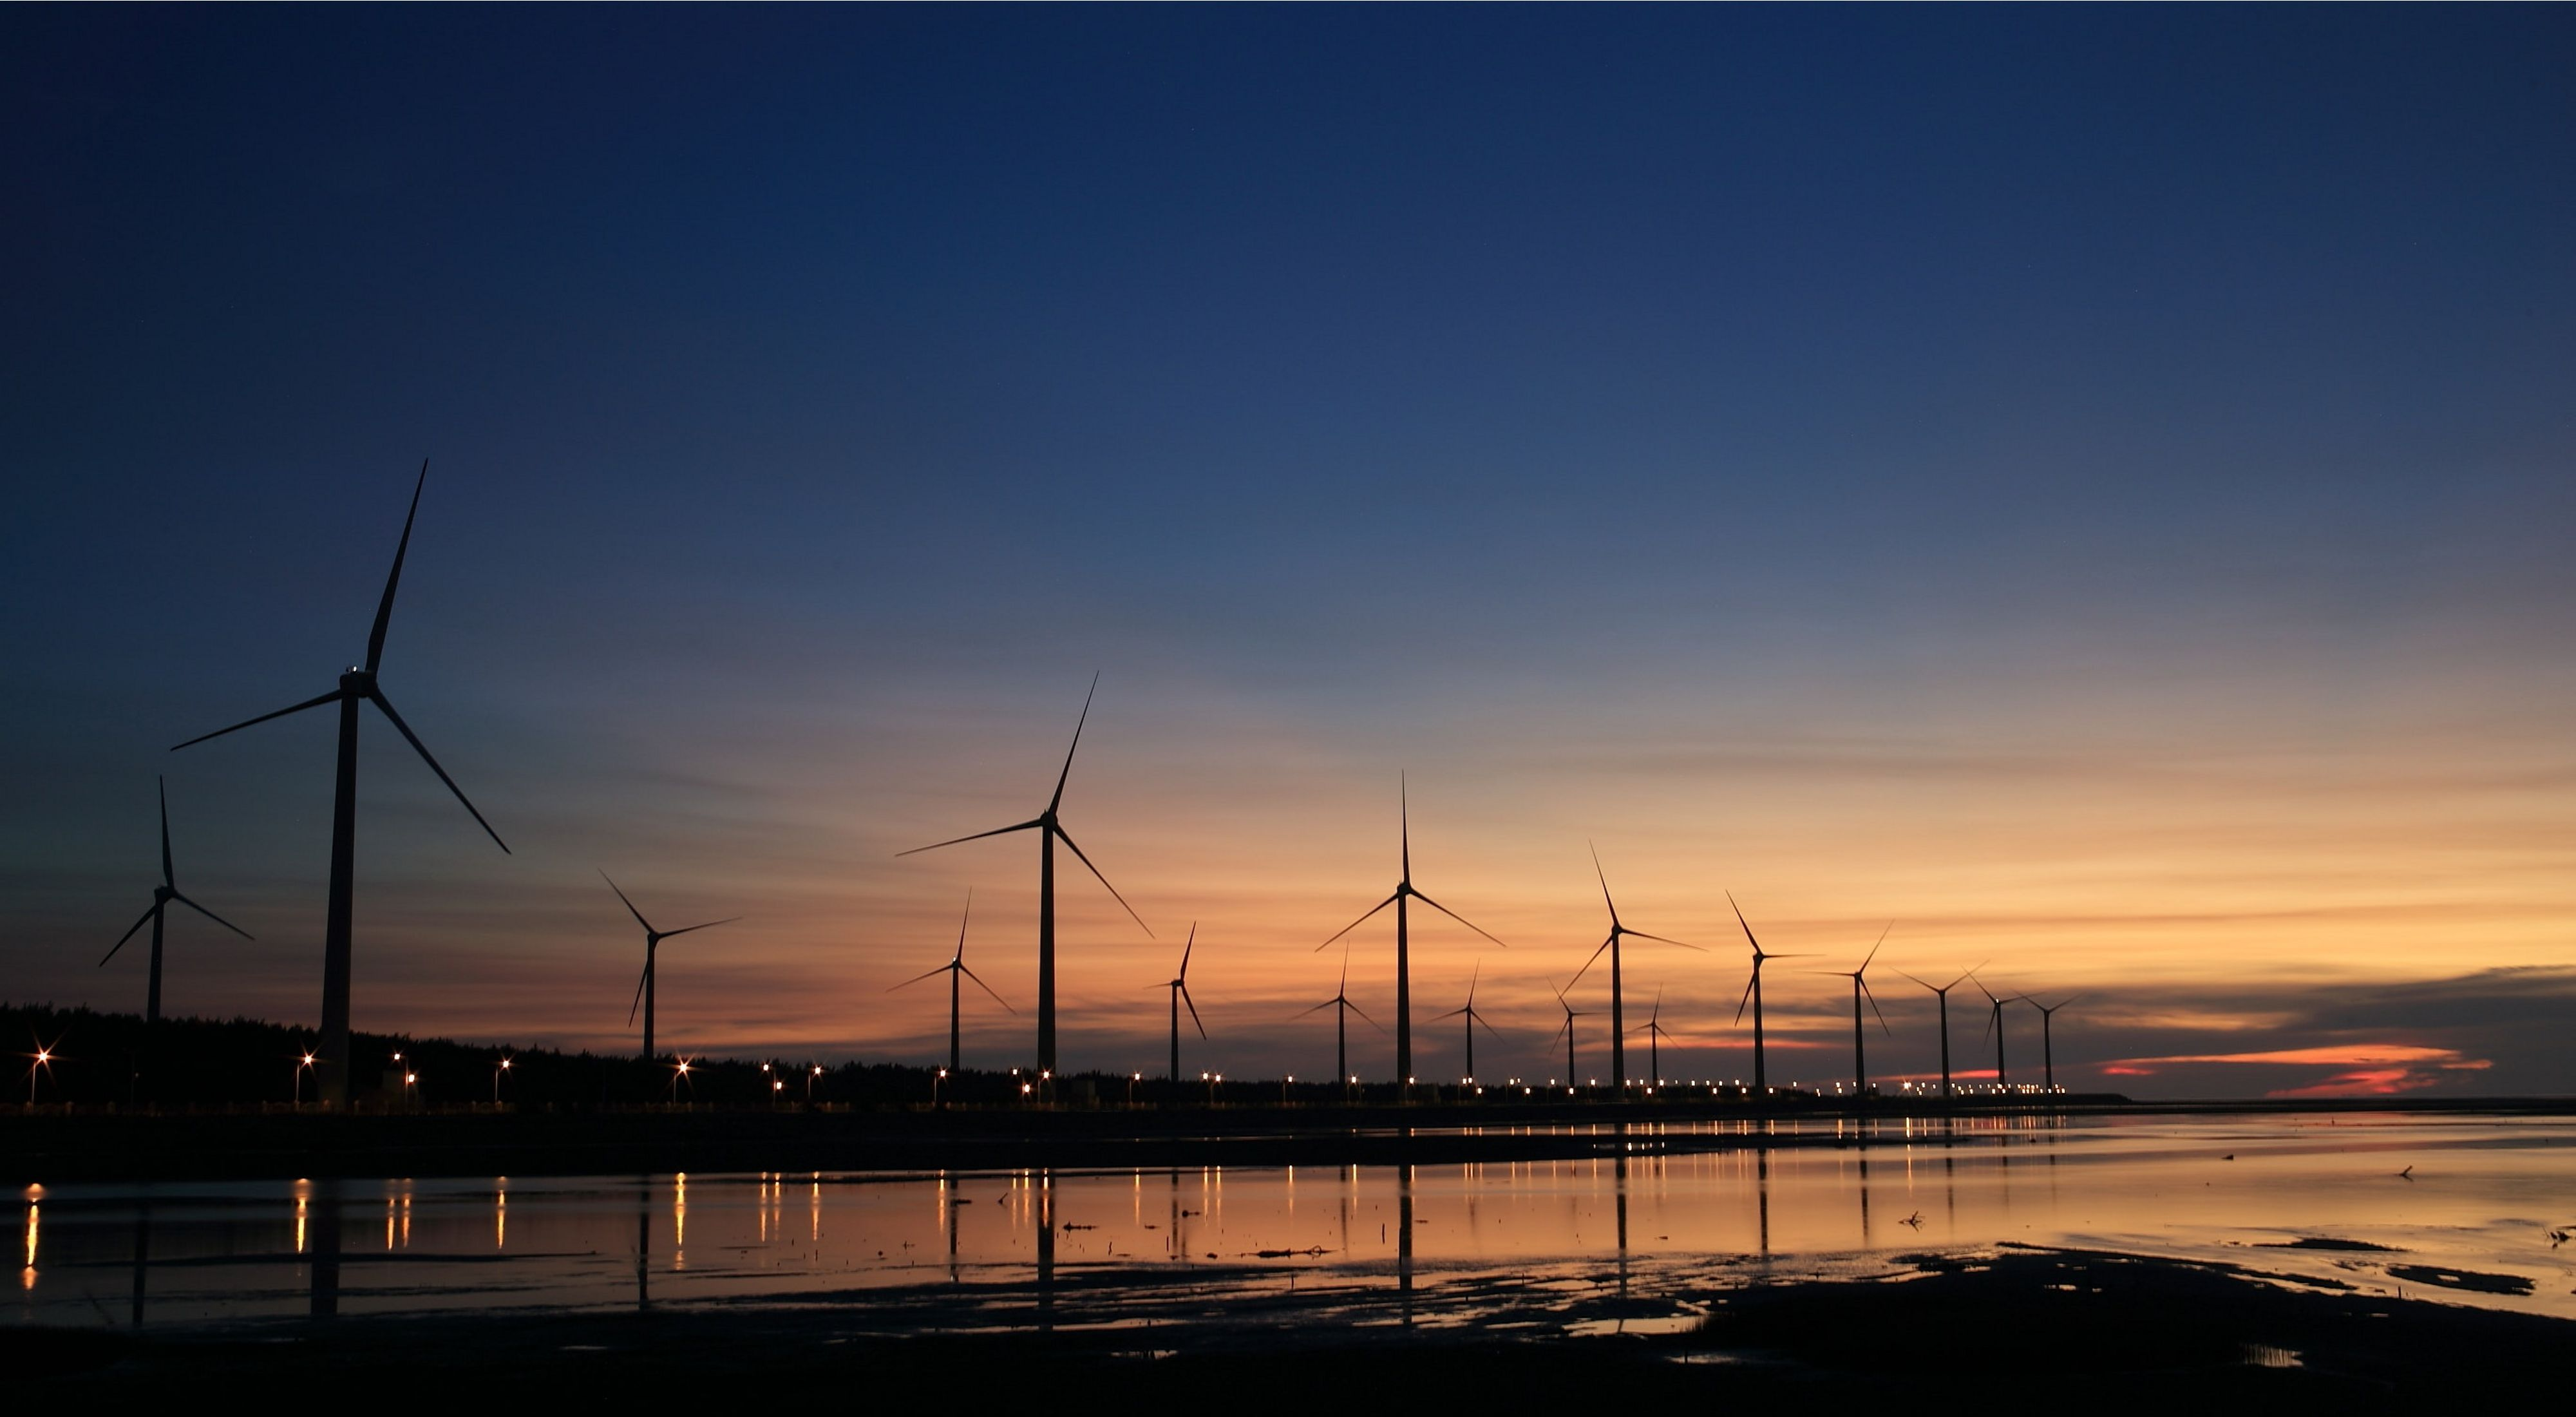 Wind turbines dot a shoreline at sunset.